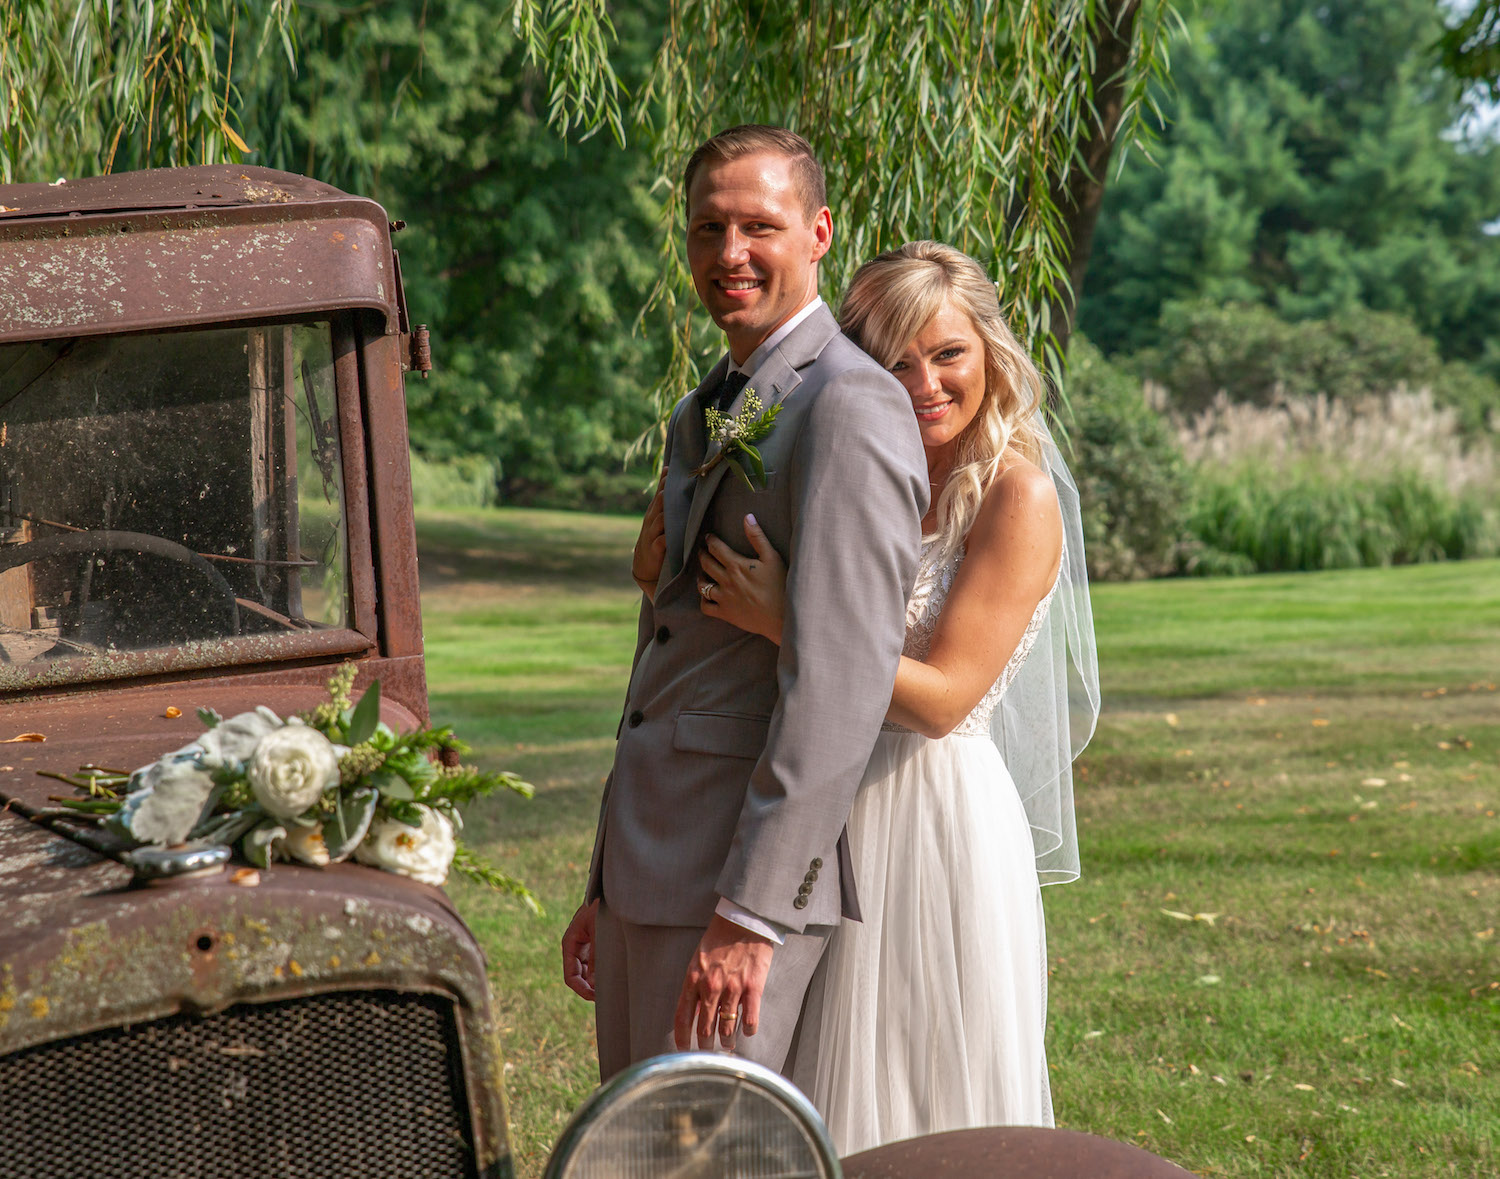 Cindyrellas Garden outdoor wedding ceremony by a private lake with wooded backdrops, hugging photo